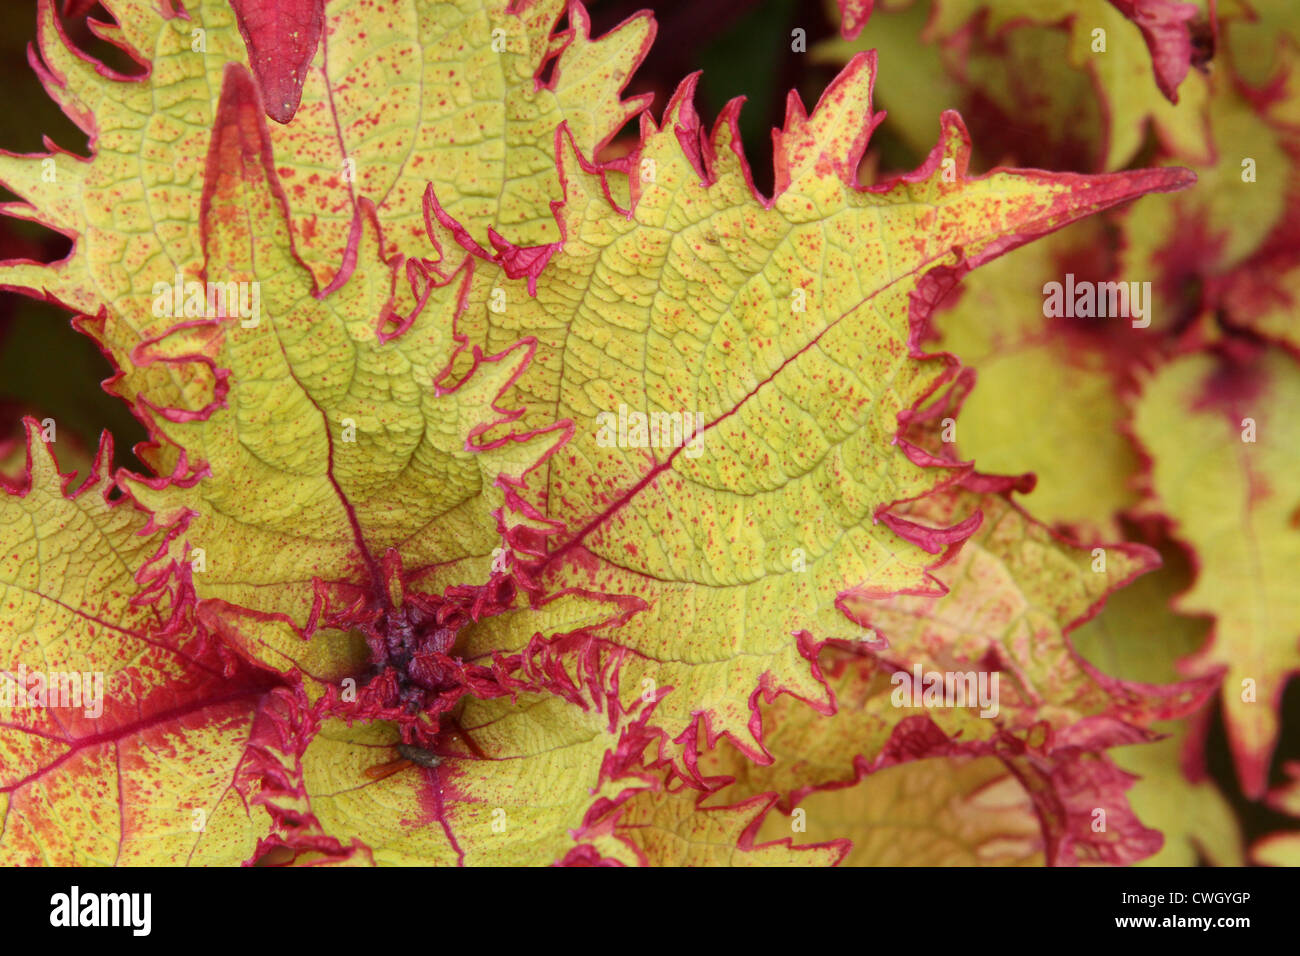 Coleus Henna. Focus in plant core. Near leaves are out of focus. - Stock Image